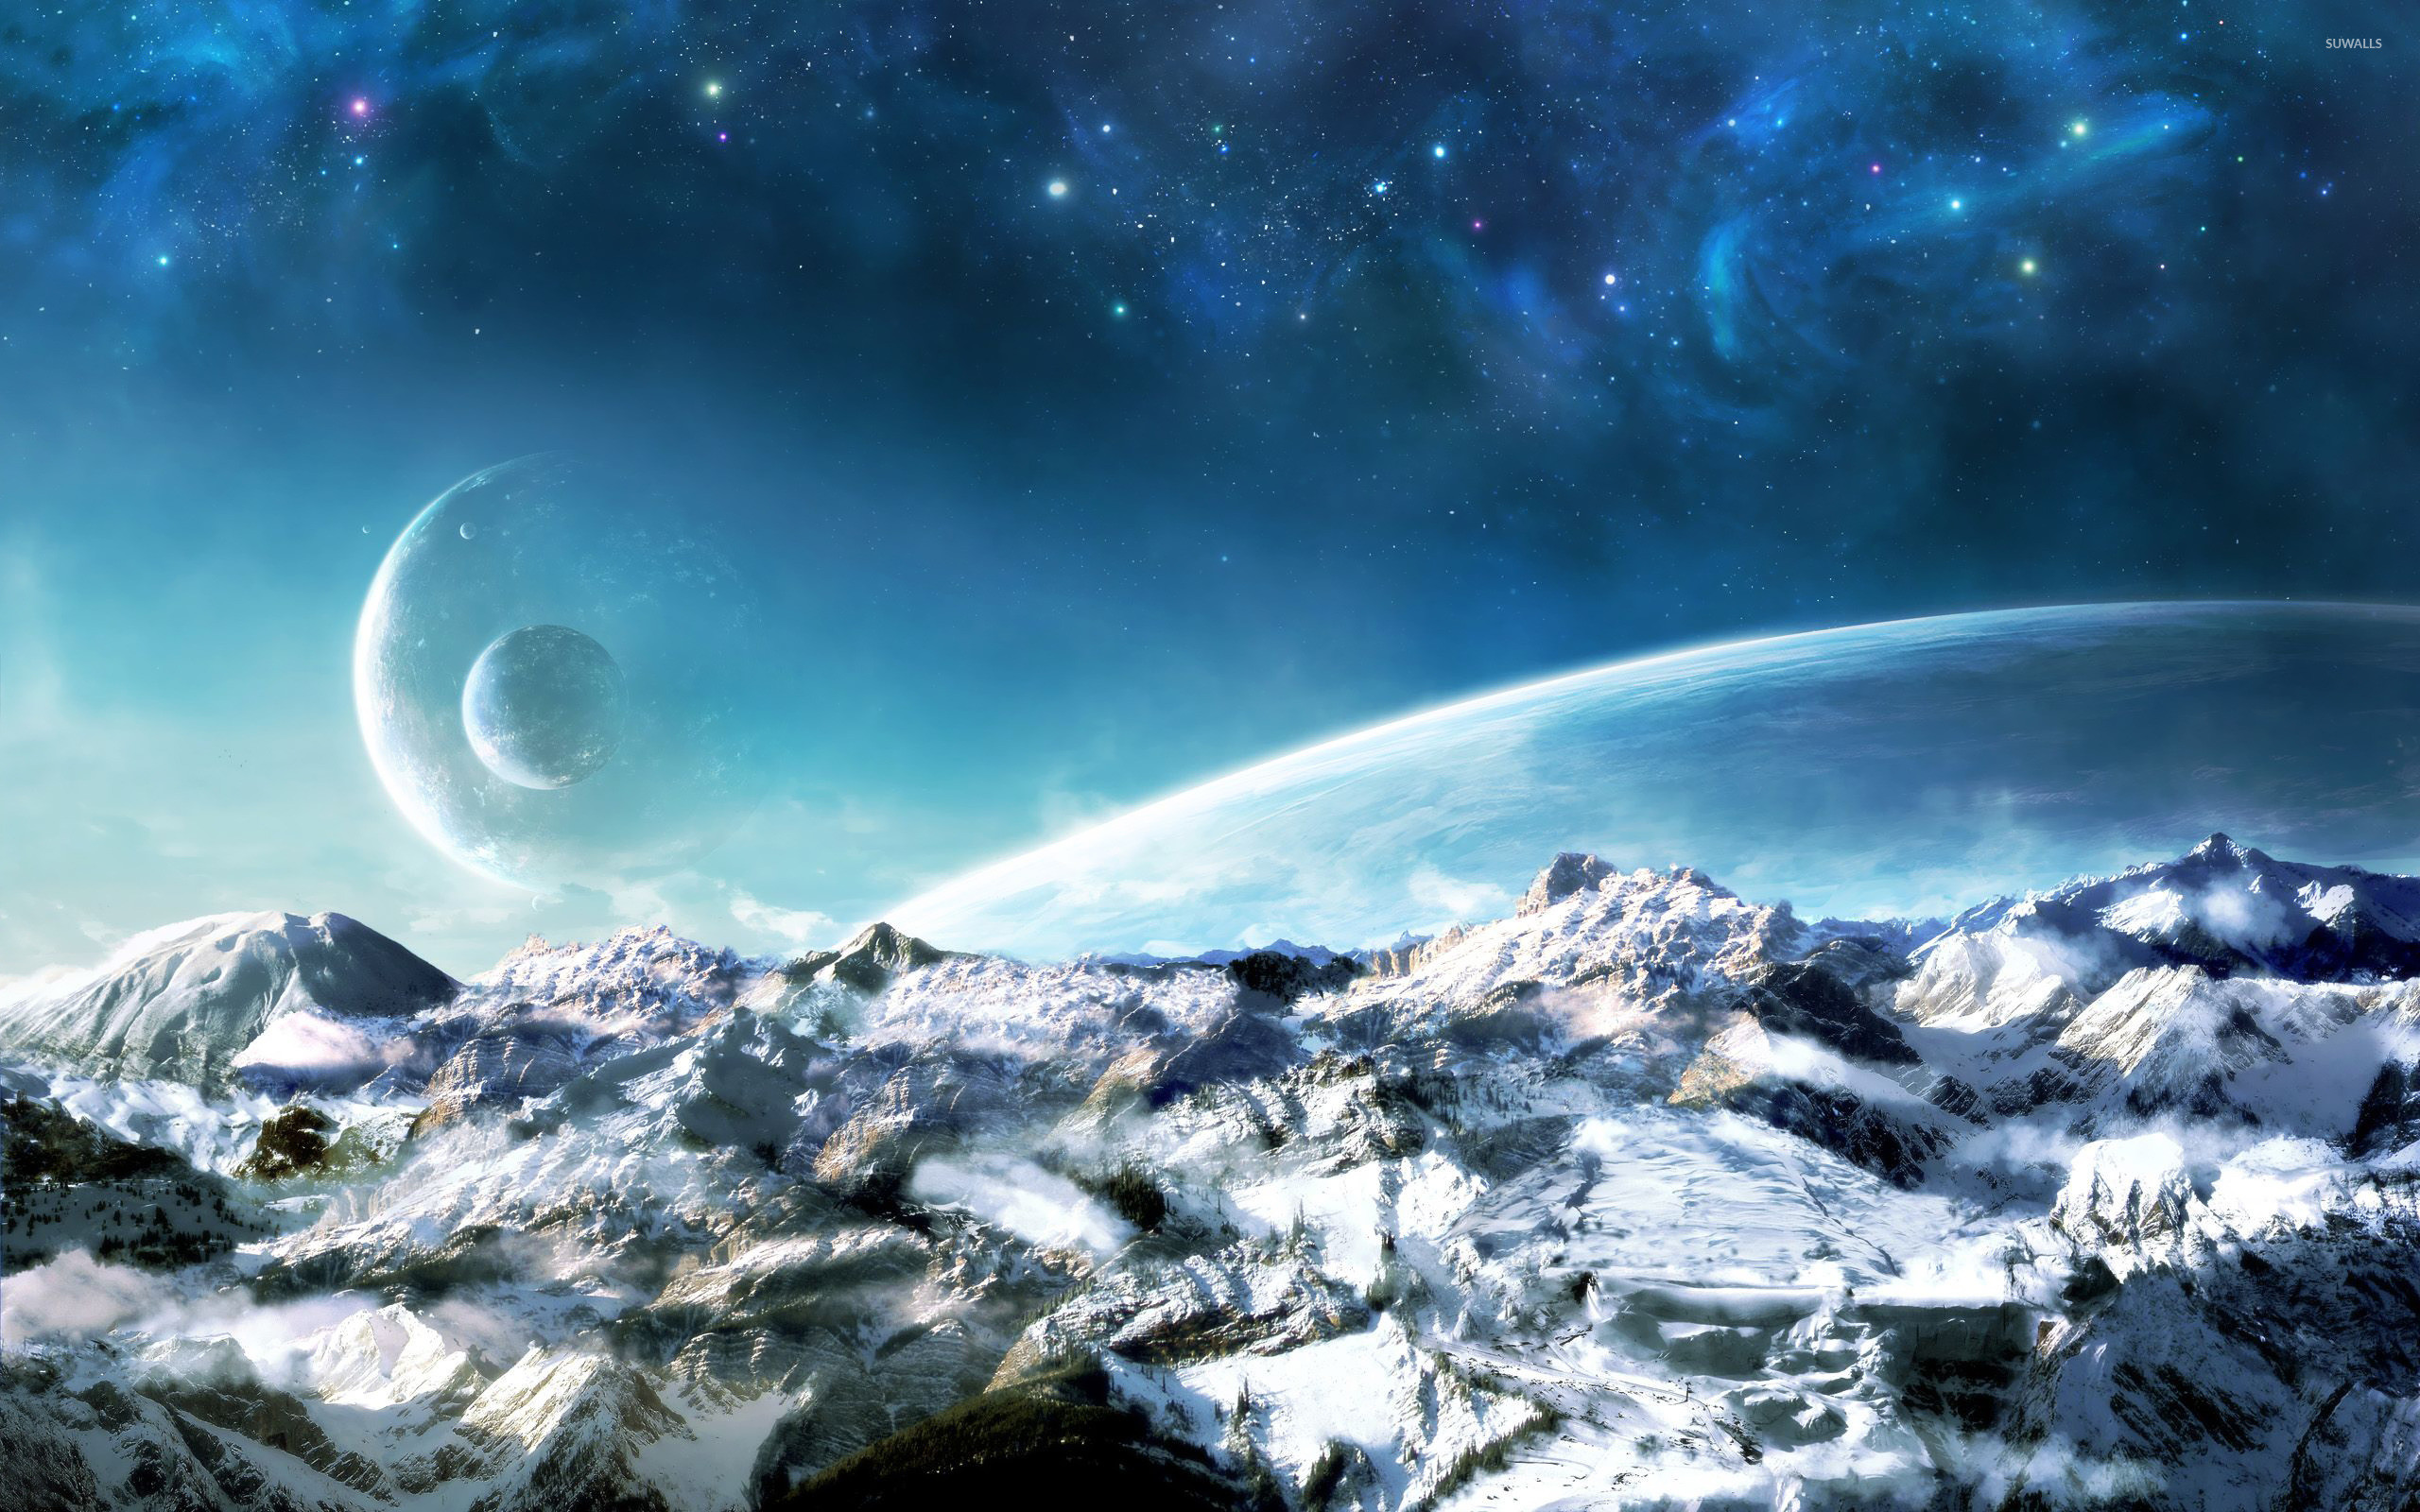 Planets over the snowy mountains wallpaper jpg